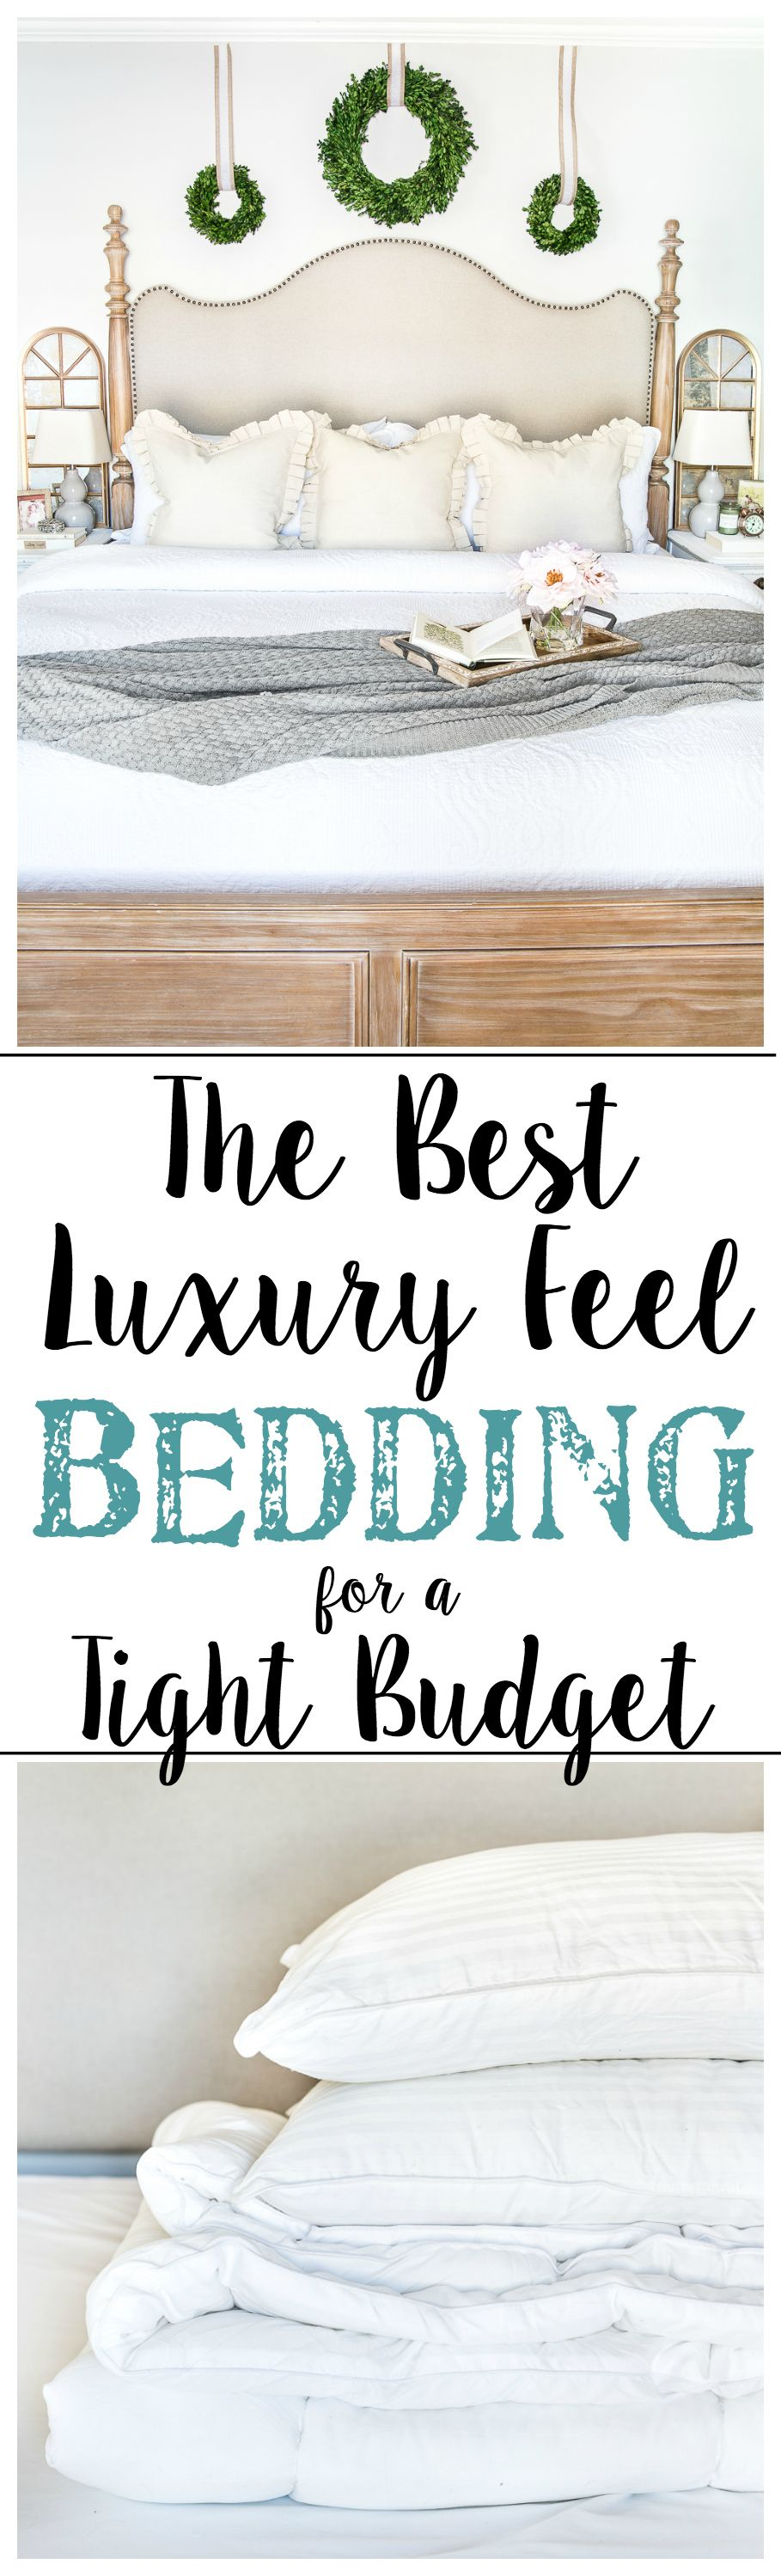 The Best Luxury Feel Bedding for a Tight Budget   Cheap ... on Luxury Bedroom Ideas On A Budget  id=80111